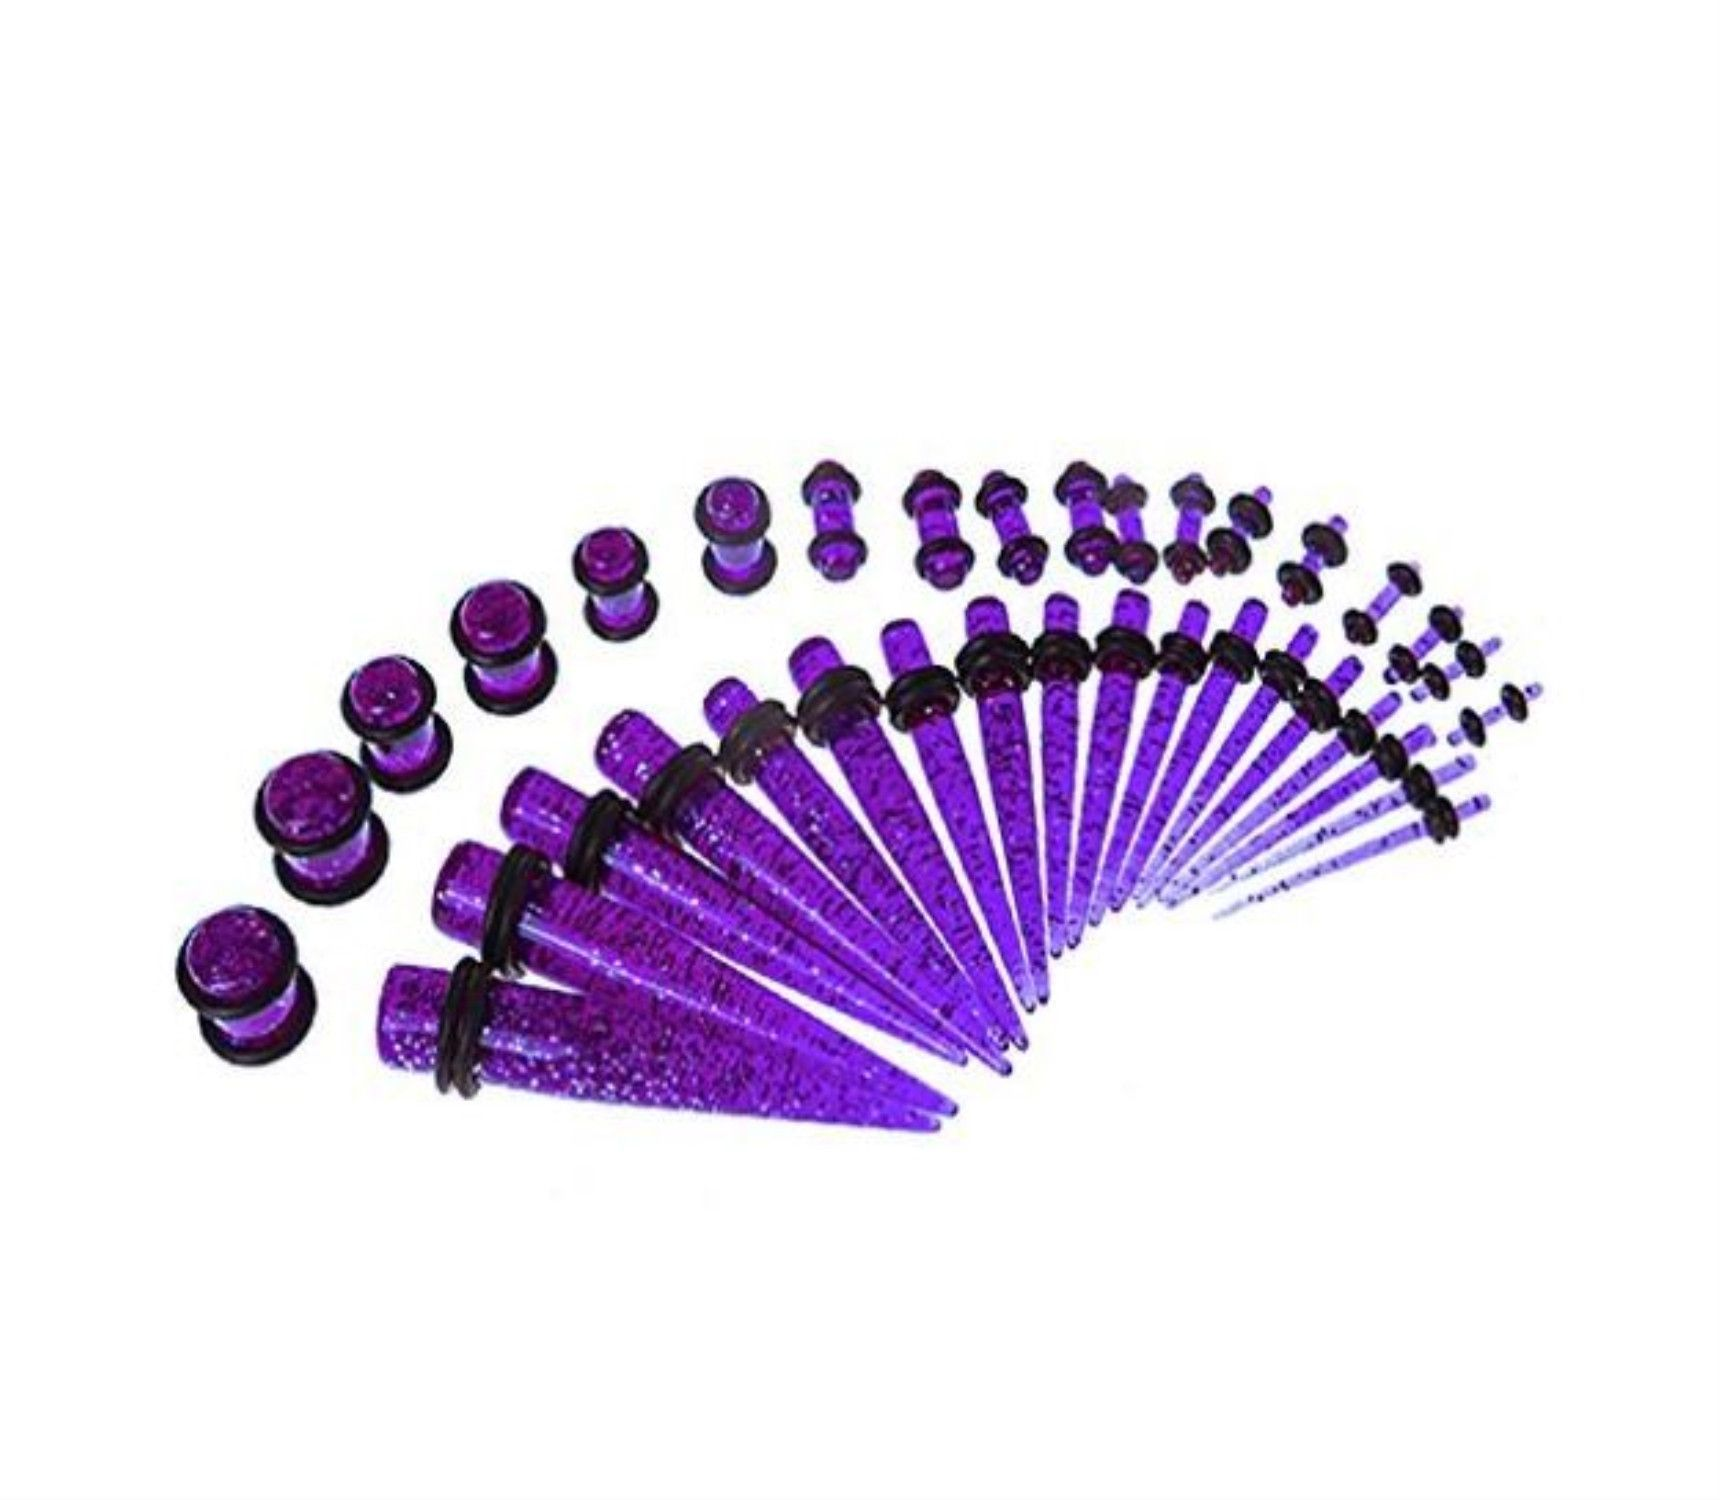 BodyJ4You® Gauges Kit 18 Pairs Purple Glitter Acrylic Tapers & Plugs 14G 12G 10G 8G 6G 4G 2G 0G 00G 36 Pieces